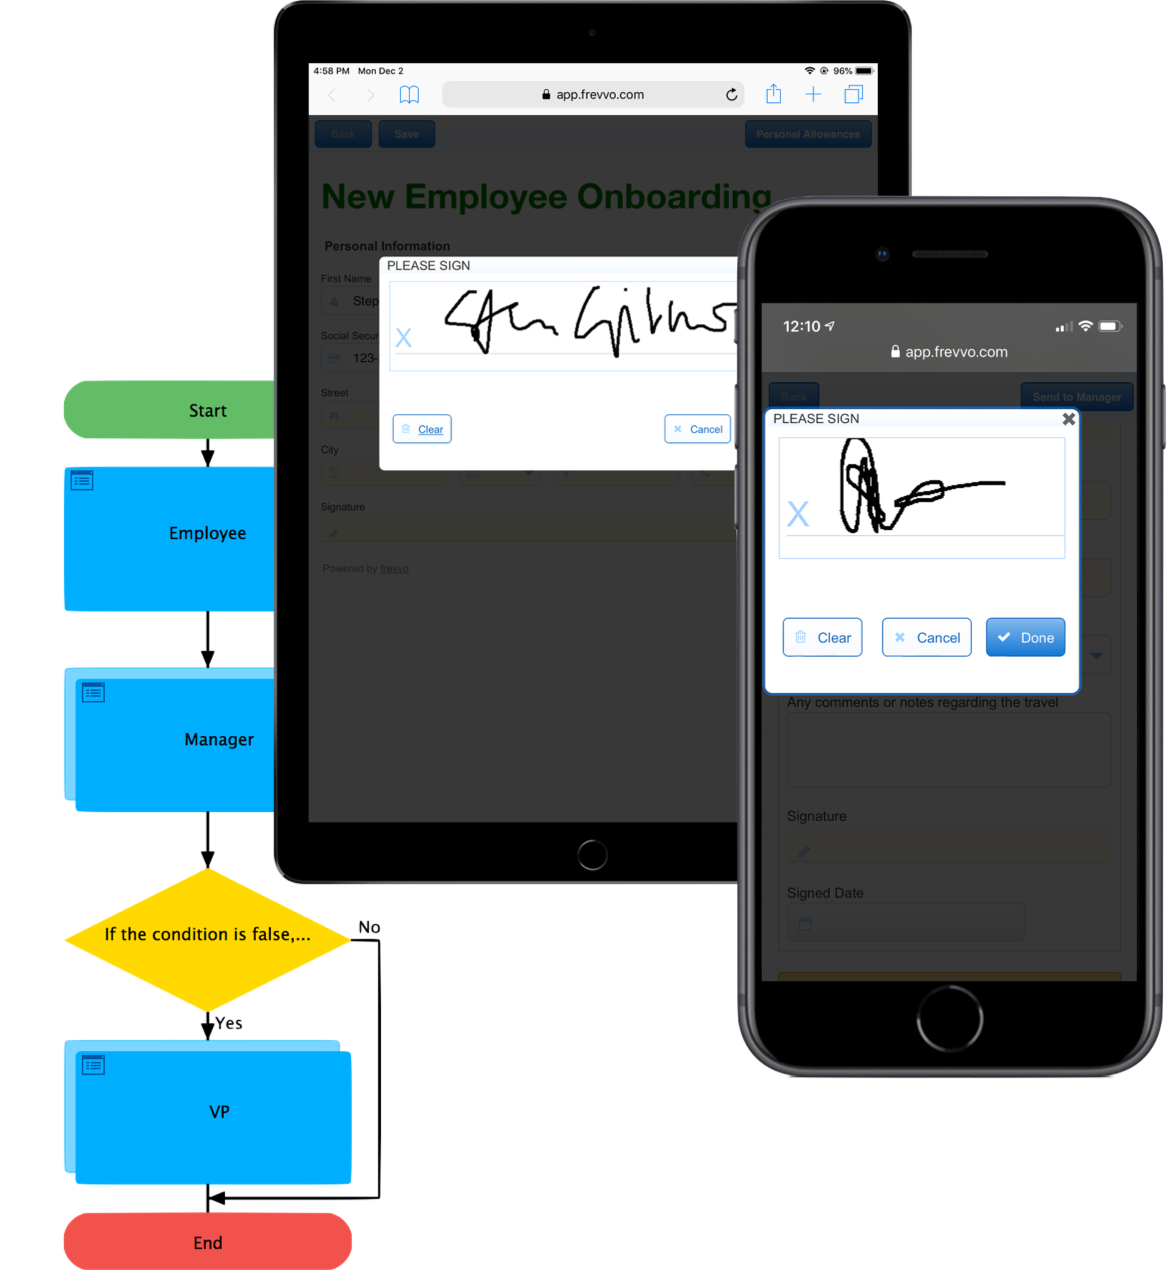 Digital signatures on mobile devices